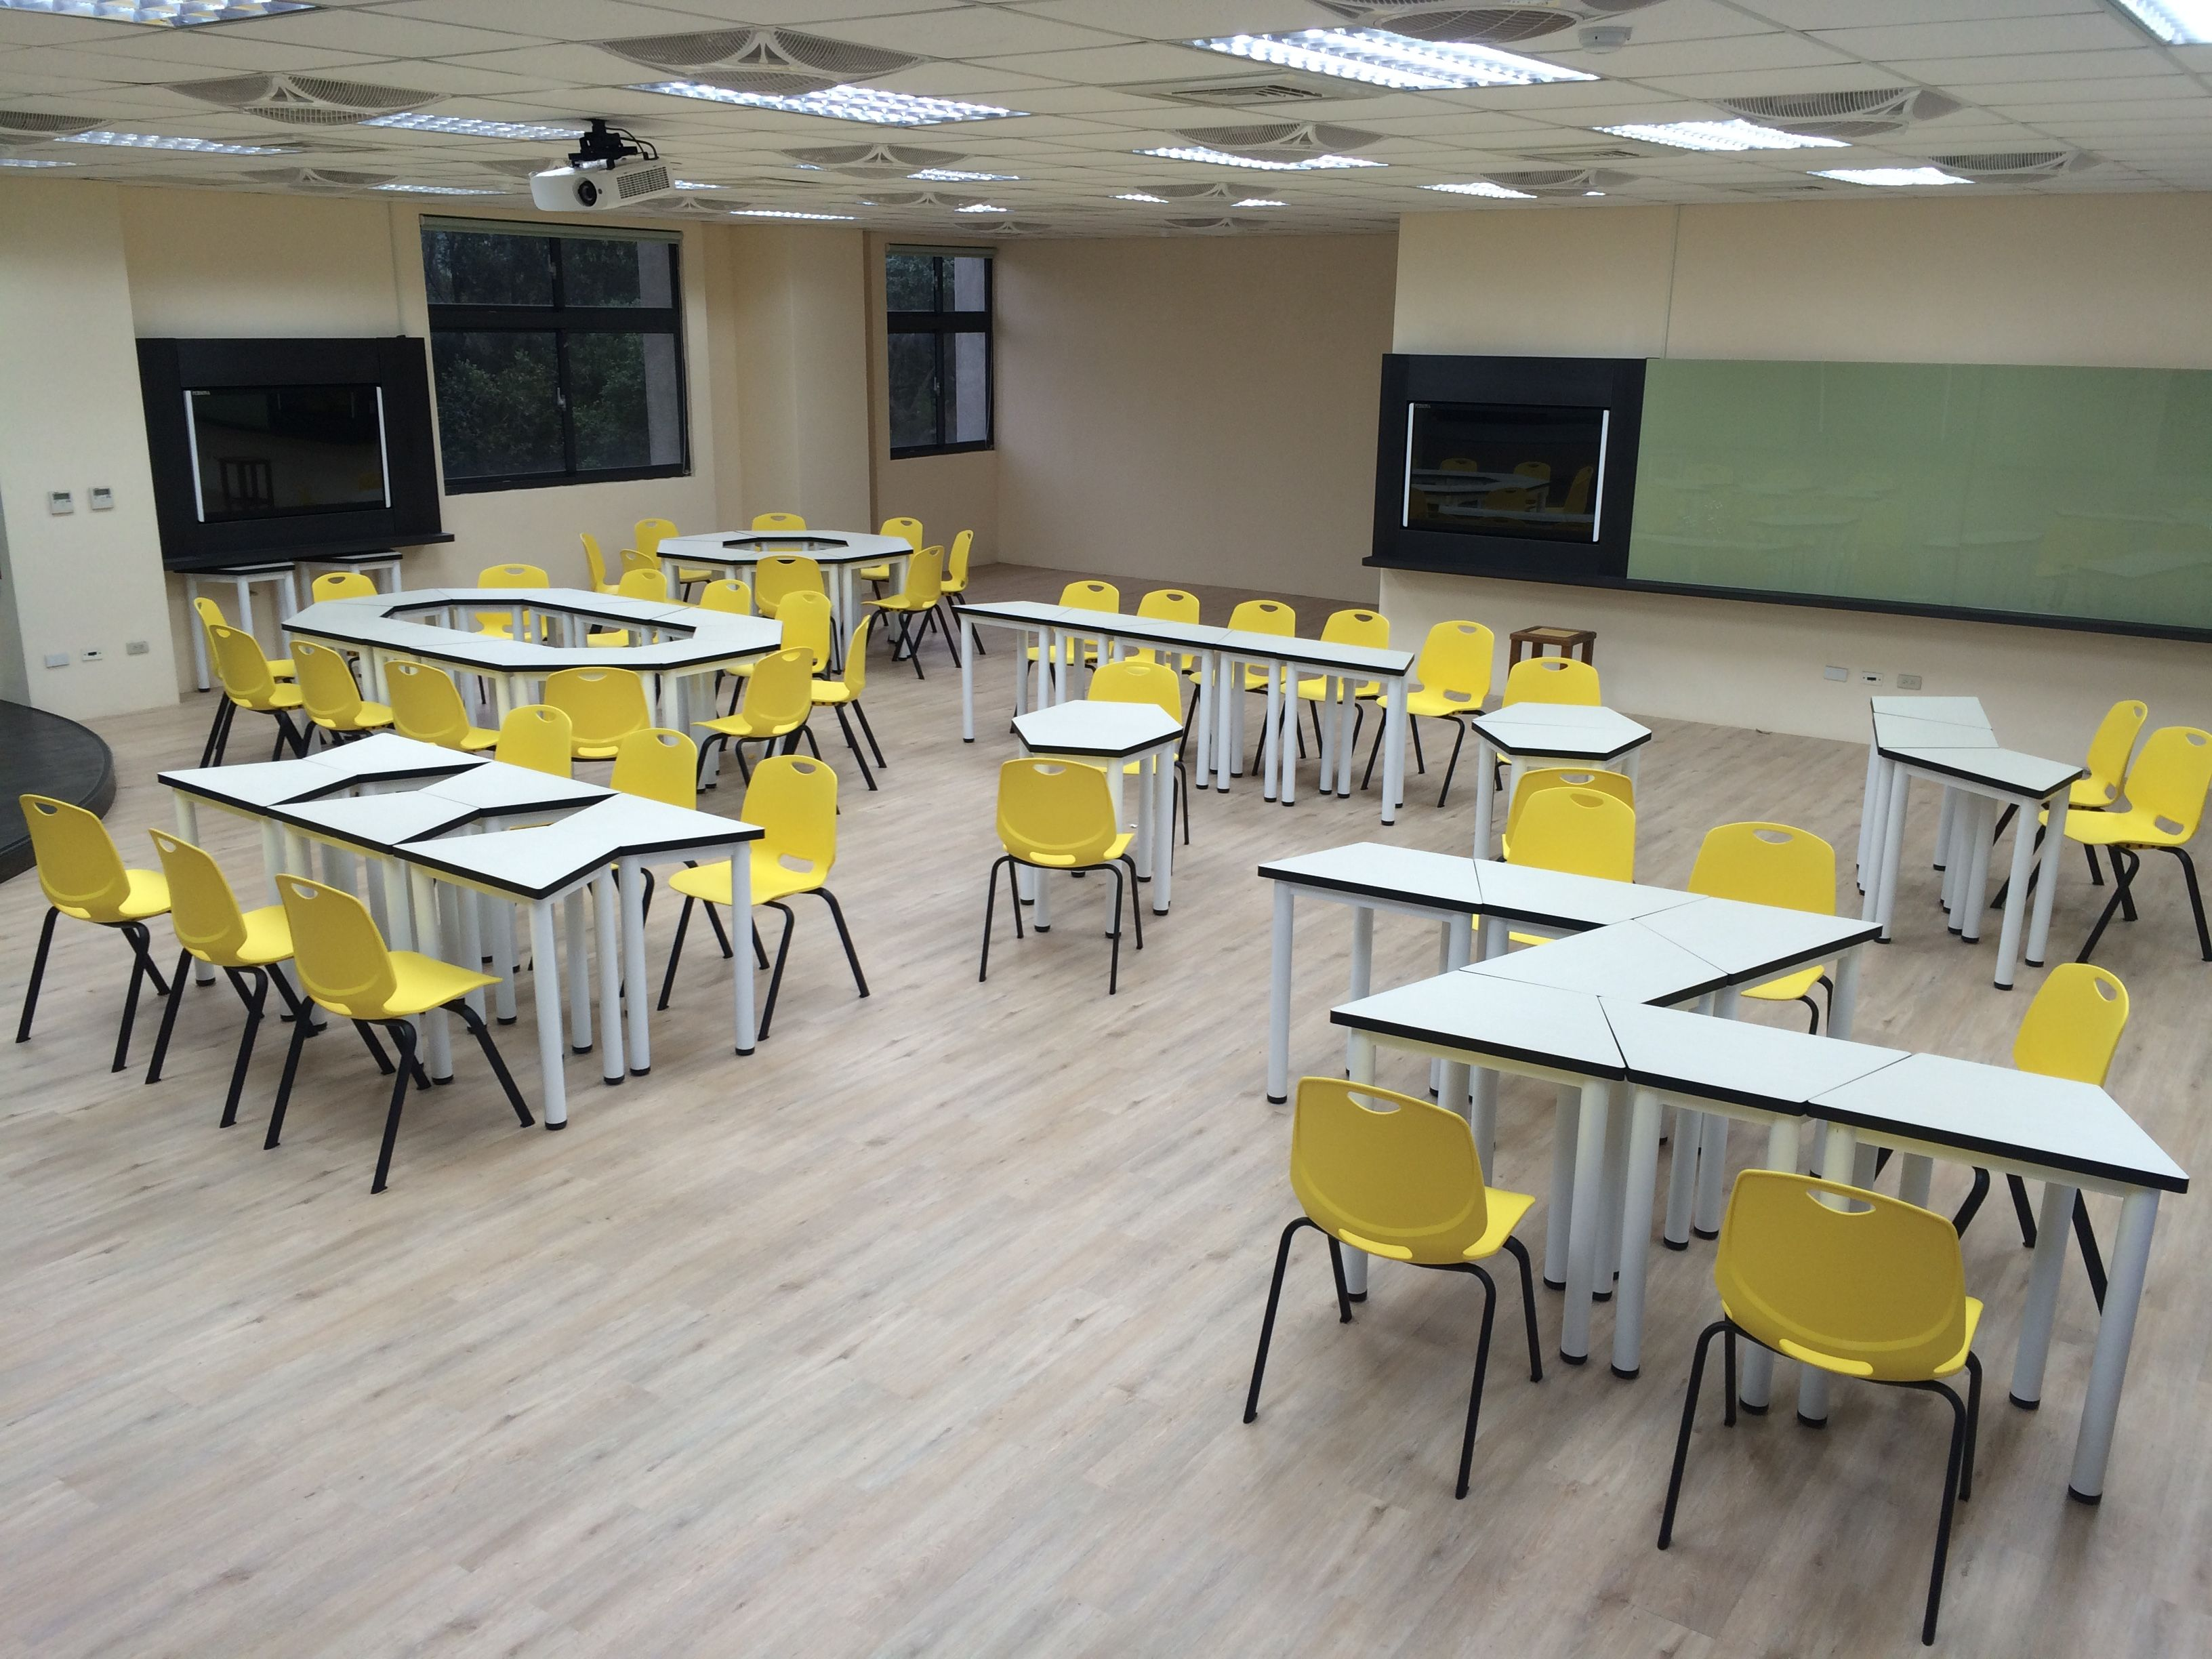 Classroom Furniture Layout ~ Pin by 鎮穎 徐 on trapezoid student tables modular seminar